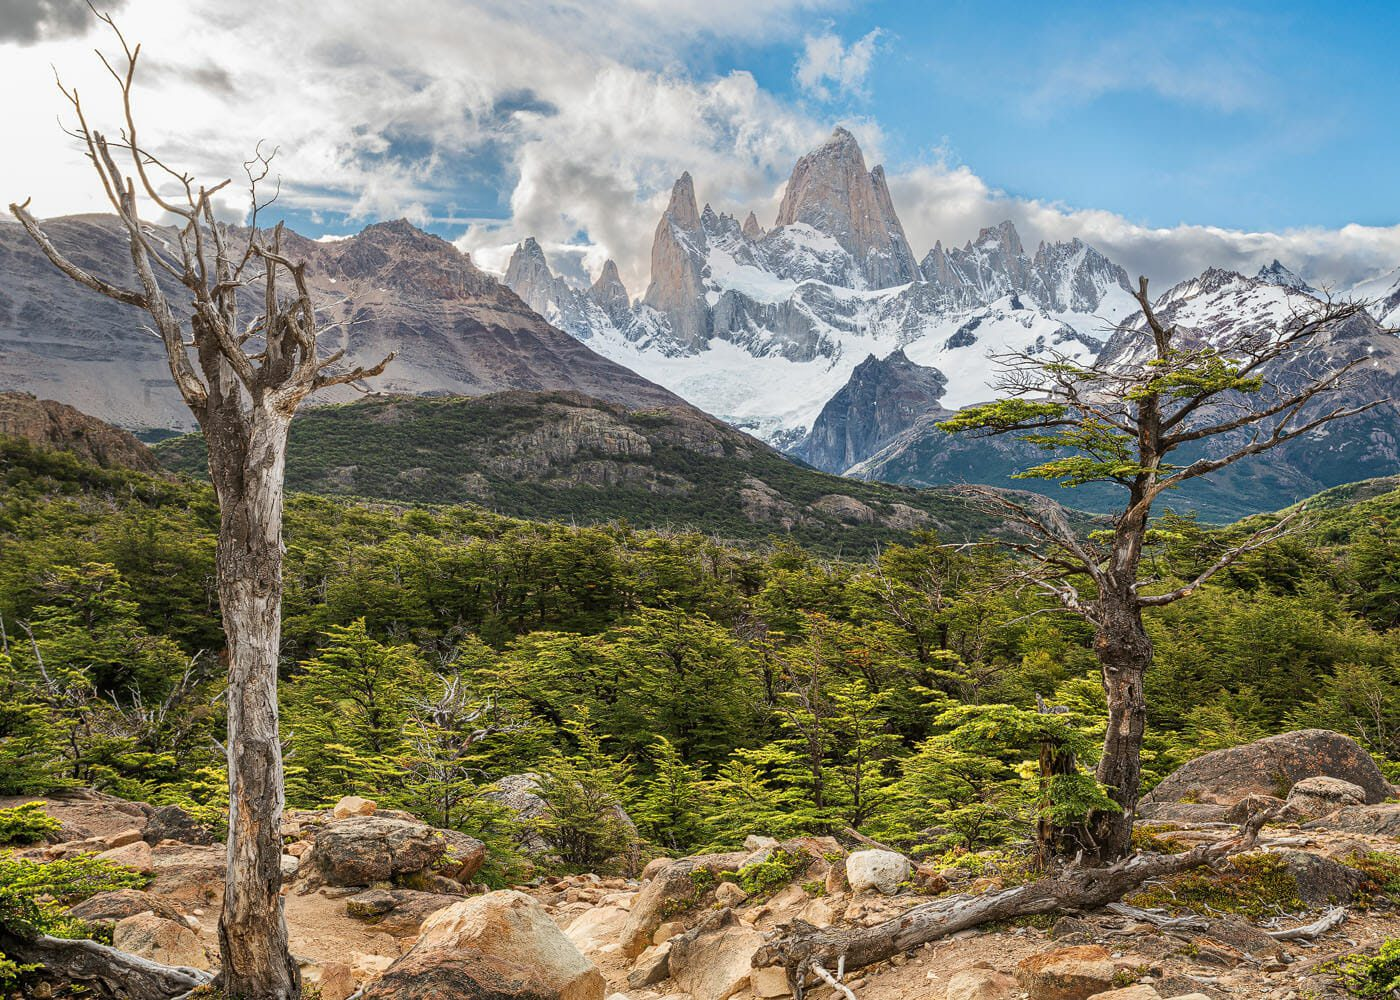 View of the Fitz Roy mountain range and trees